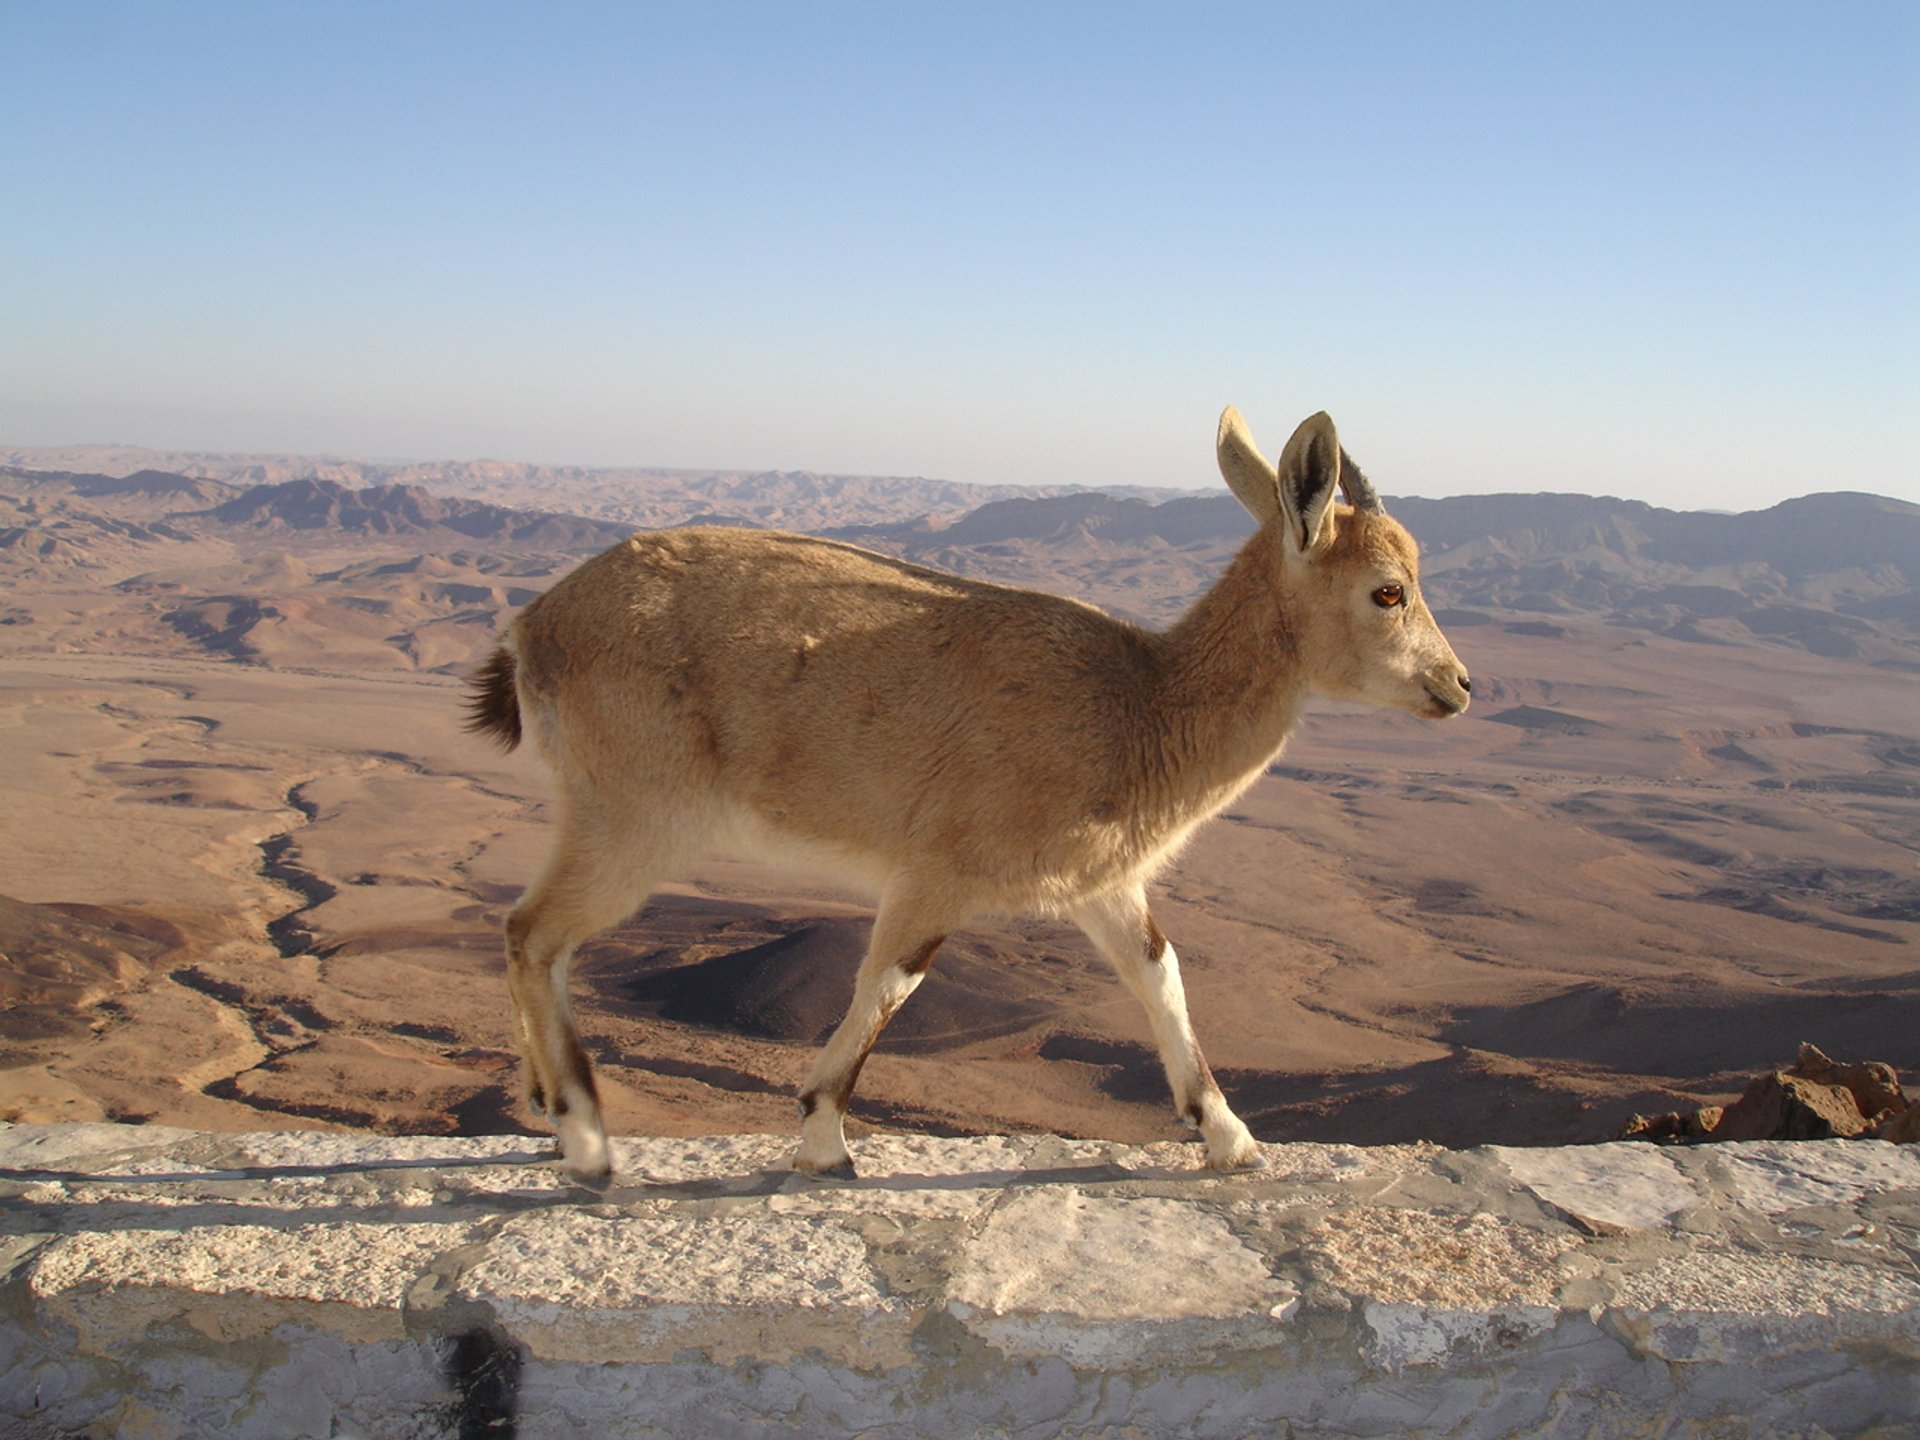 Nubian Ibex Baby Mountain Goats in Israel 2020 - Best Time